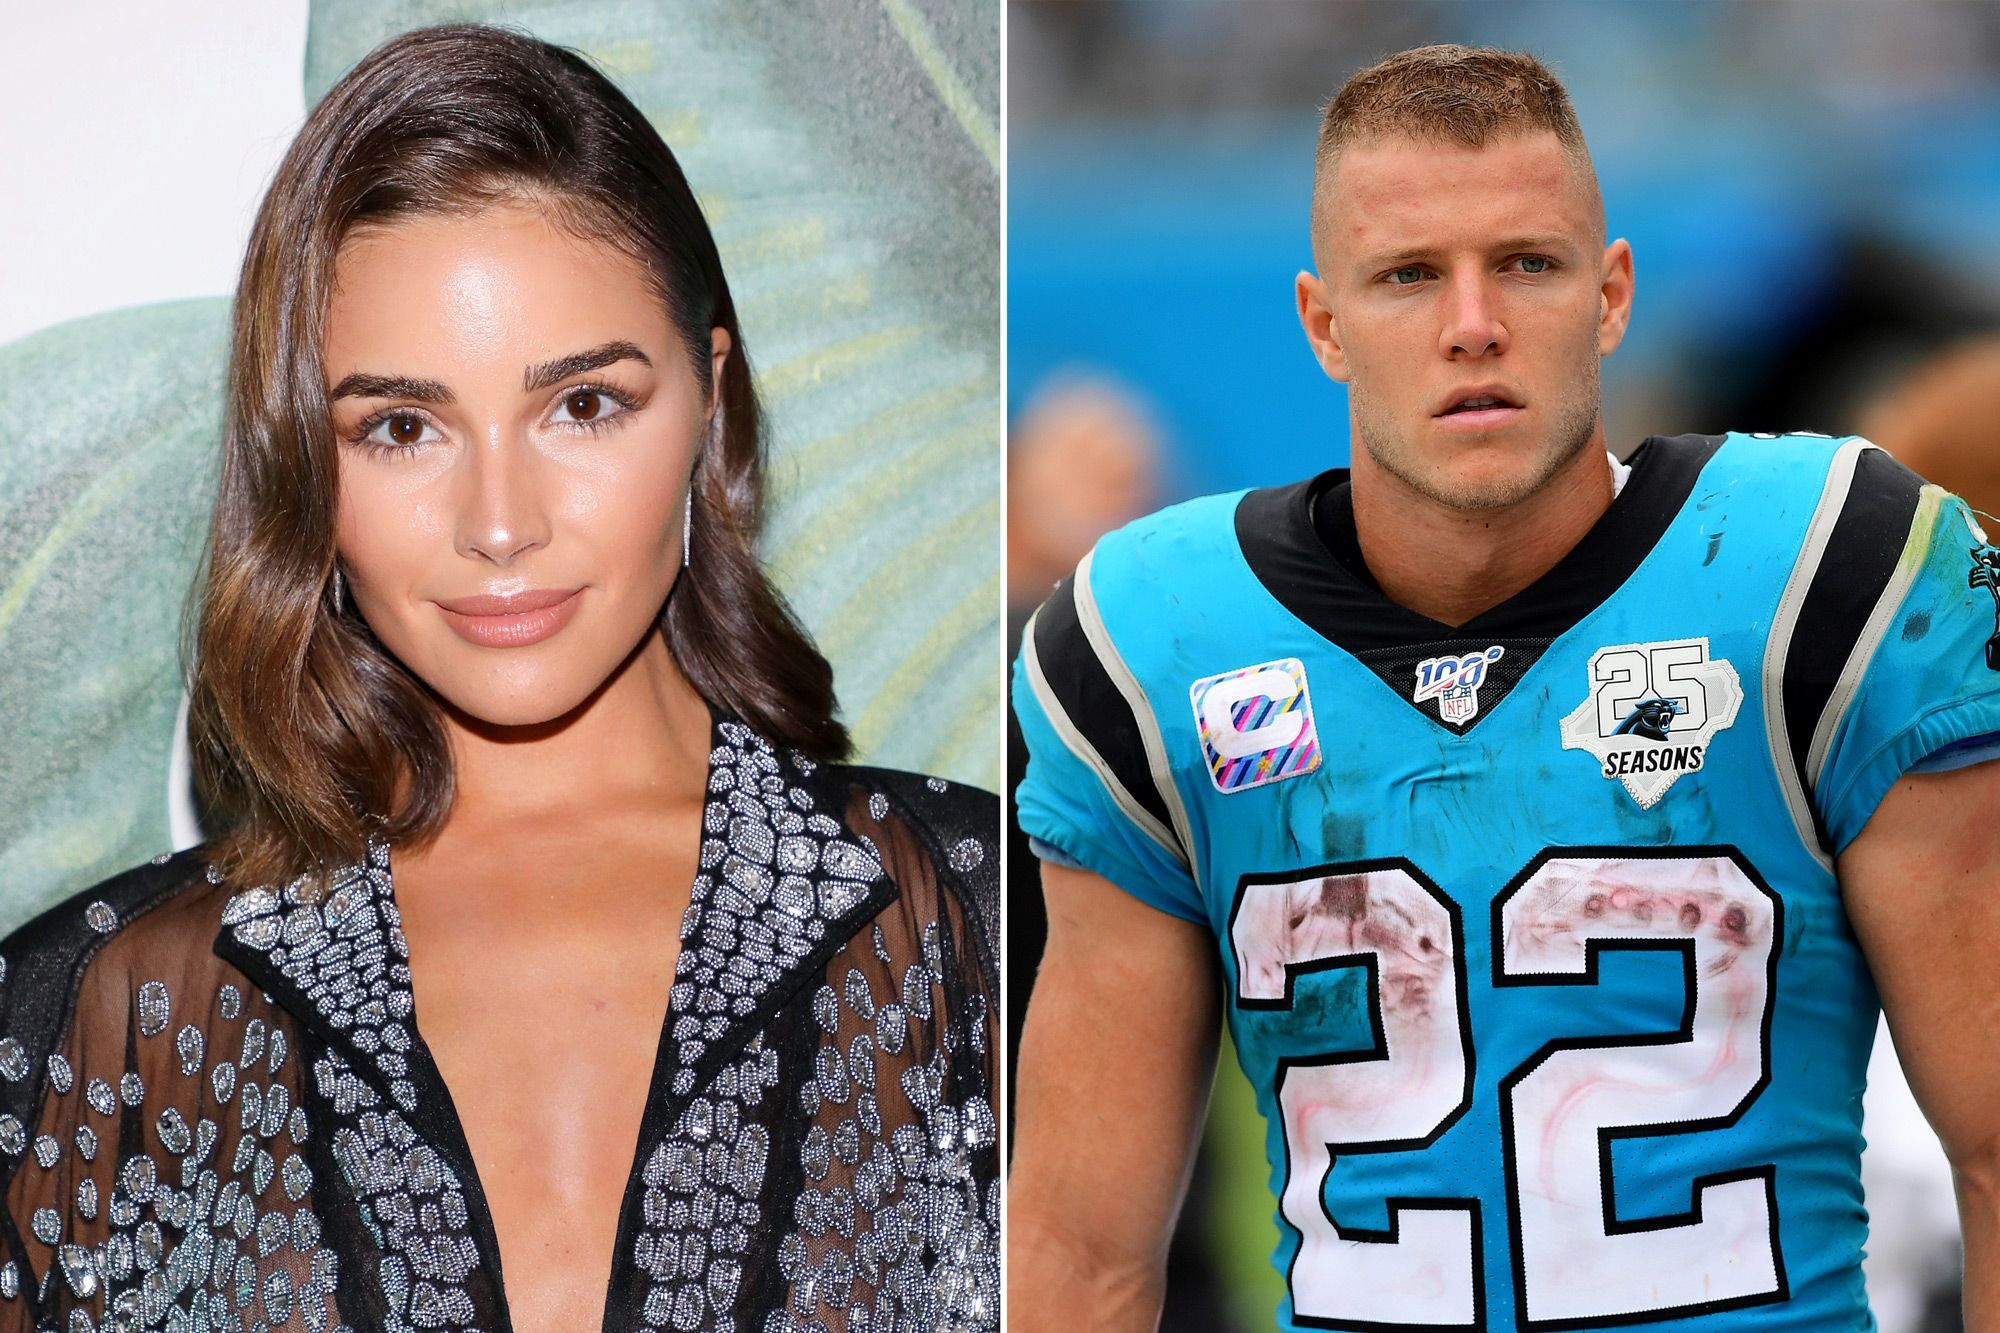 Olivia Culpo S Boyfriend Christian Mccaffrey Flirts With Her After Sharing Sultry Shot And It S Super Cute In 2020 Christian Mccaffrey Olivia Culpo Super Cute